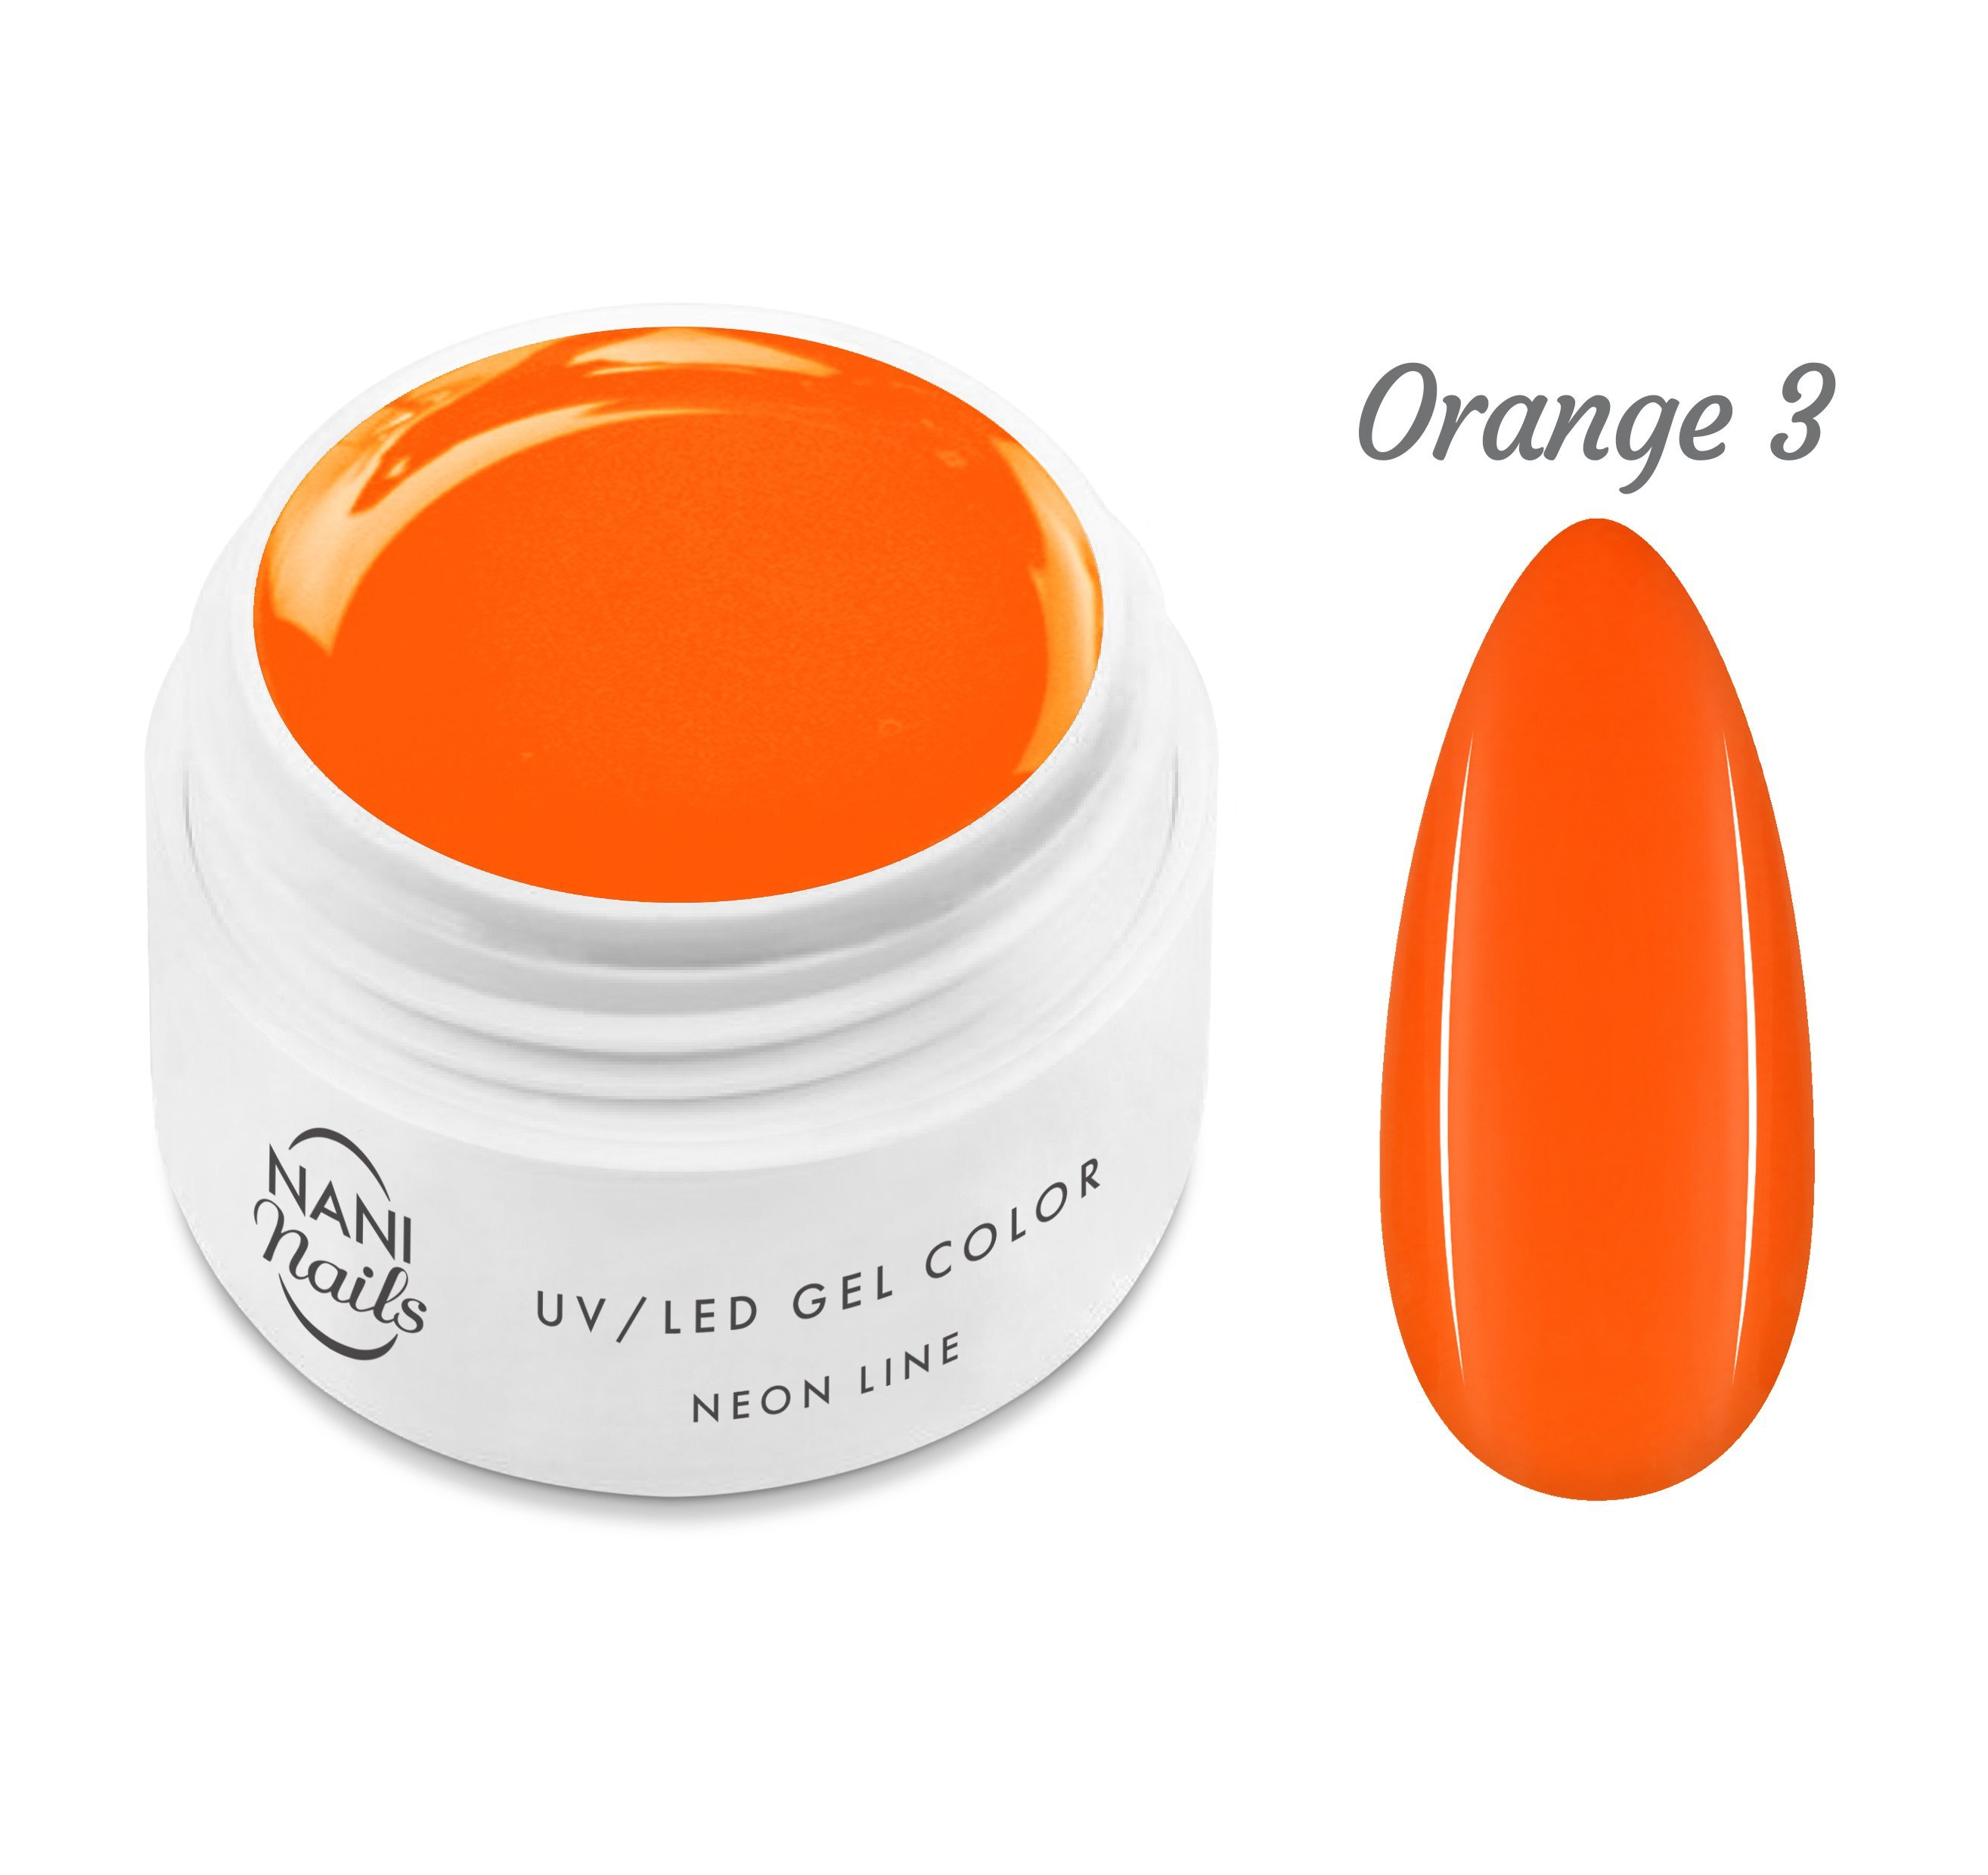 NANI UV gél Neon Line 5 ml - Orange